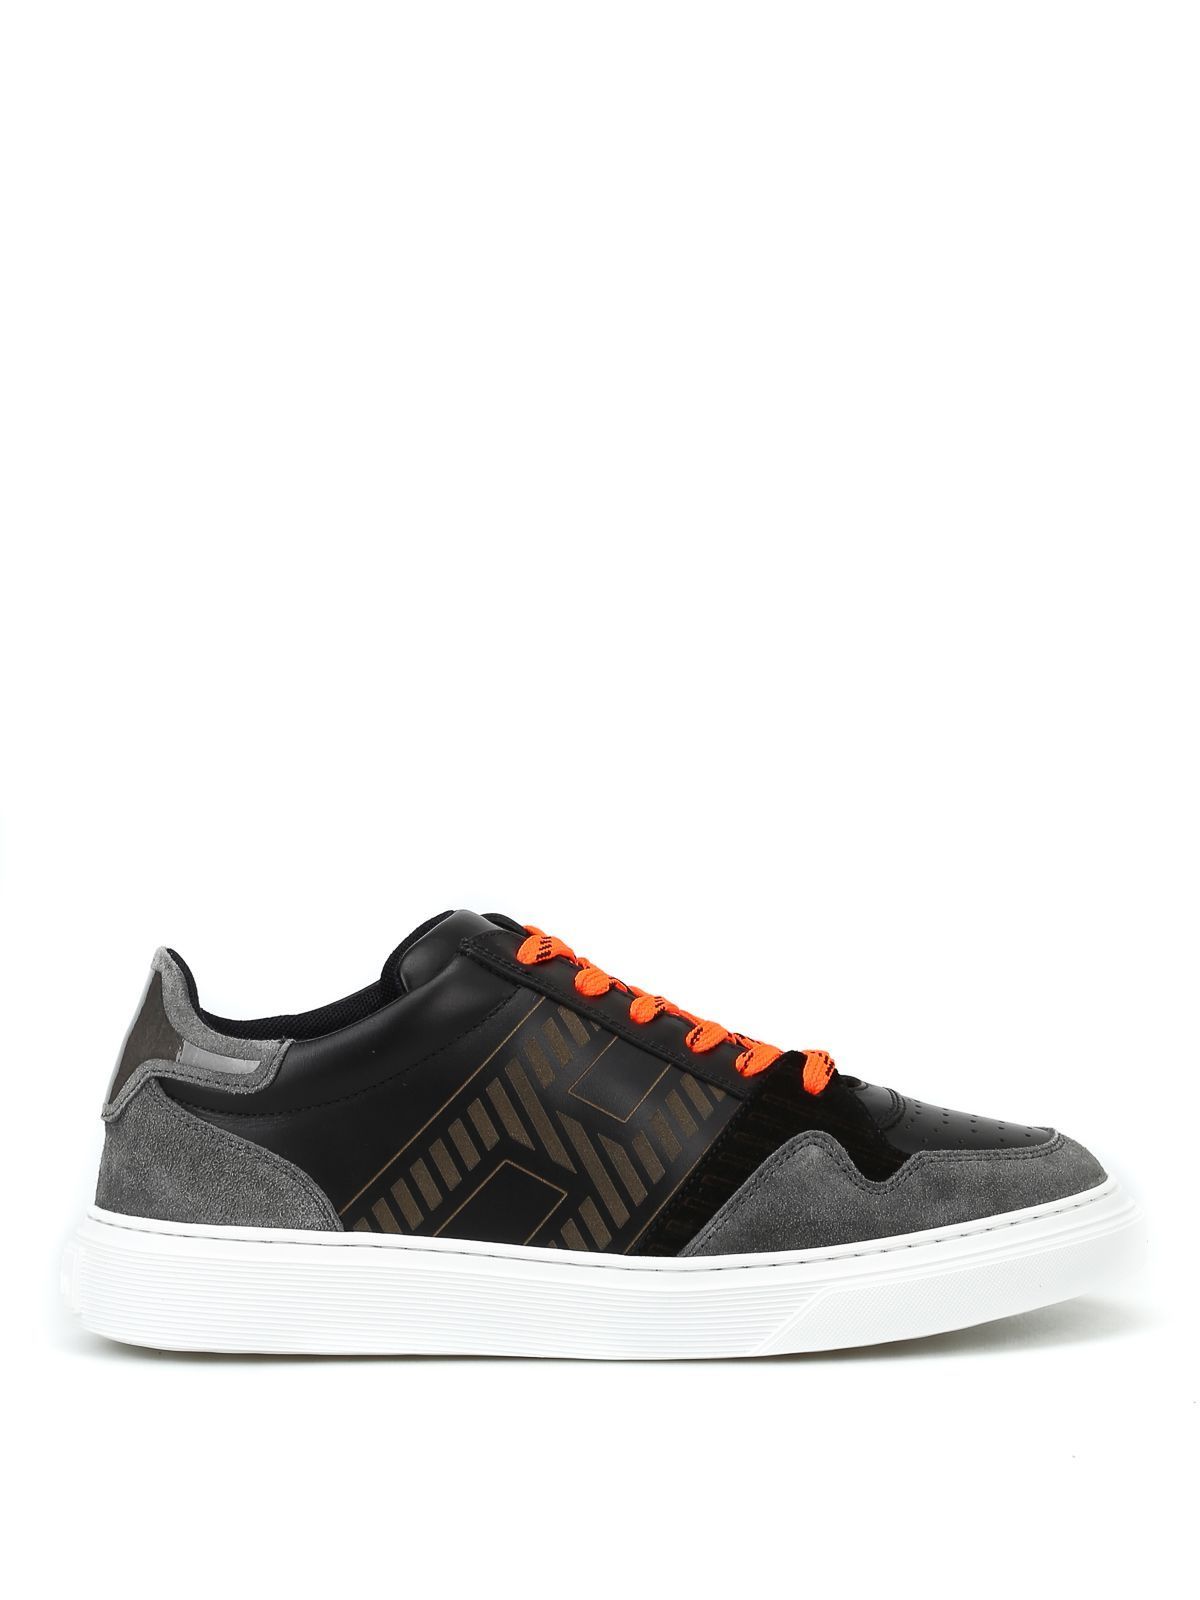 2d77bb441c5 Bally Henke Trainspotting Sneakers : Bally Shoes (1.492.905 COP) ❤ liked on  Polyvore featuring men's fashion, men's shoes, men's sneakers, …